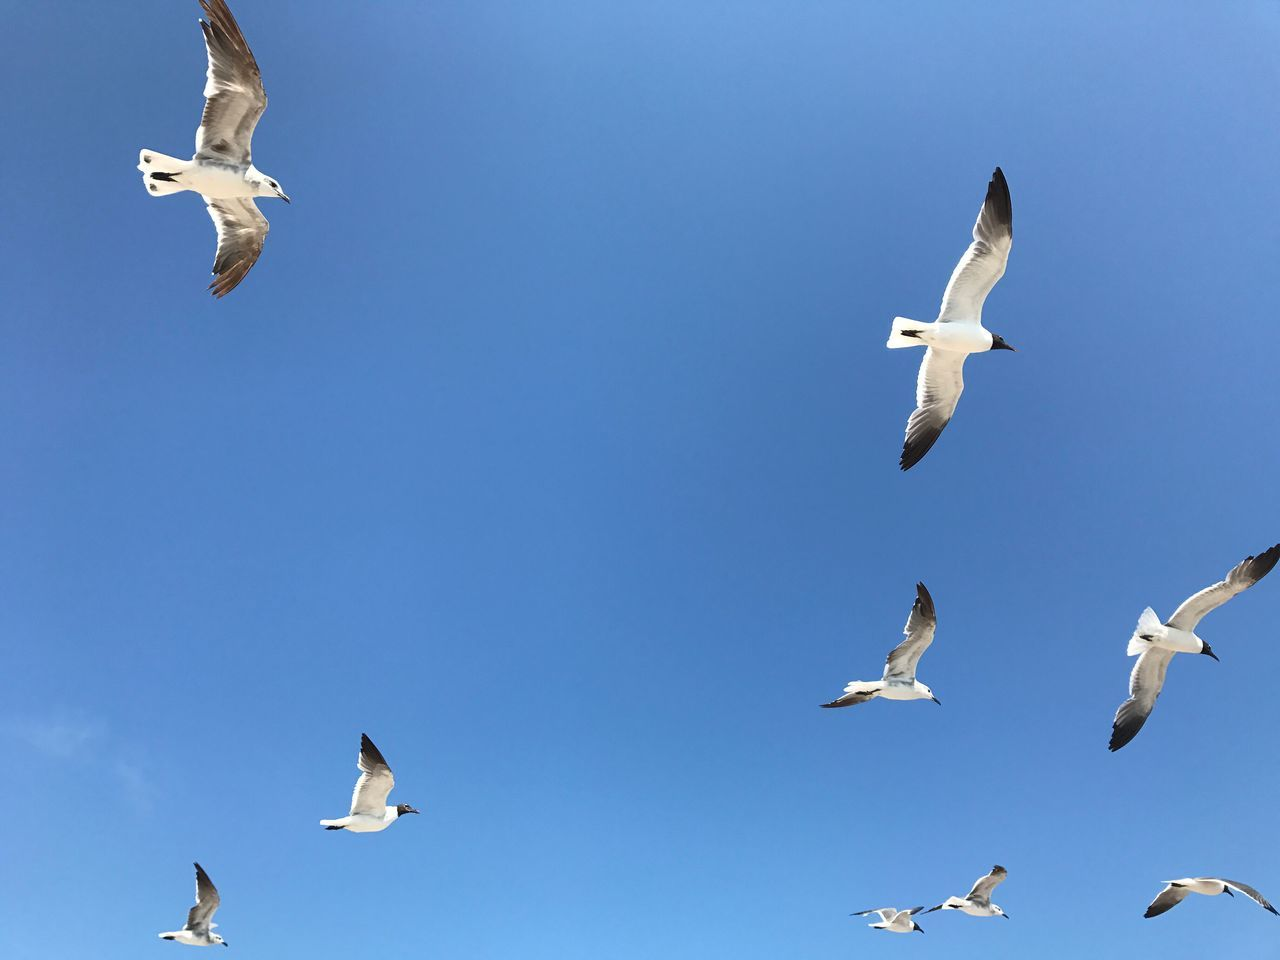 flying, animals in the wild, bird, animal themes, spread wings, animal wildlife, mid-air, day, low angle view, clear sky, large group of animals, flock of birds, seagull, blue, outdoors, no people, nature, sky, beauty in nature